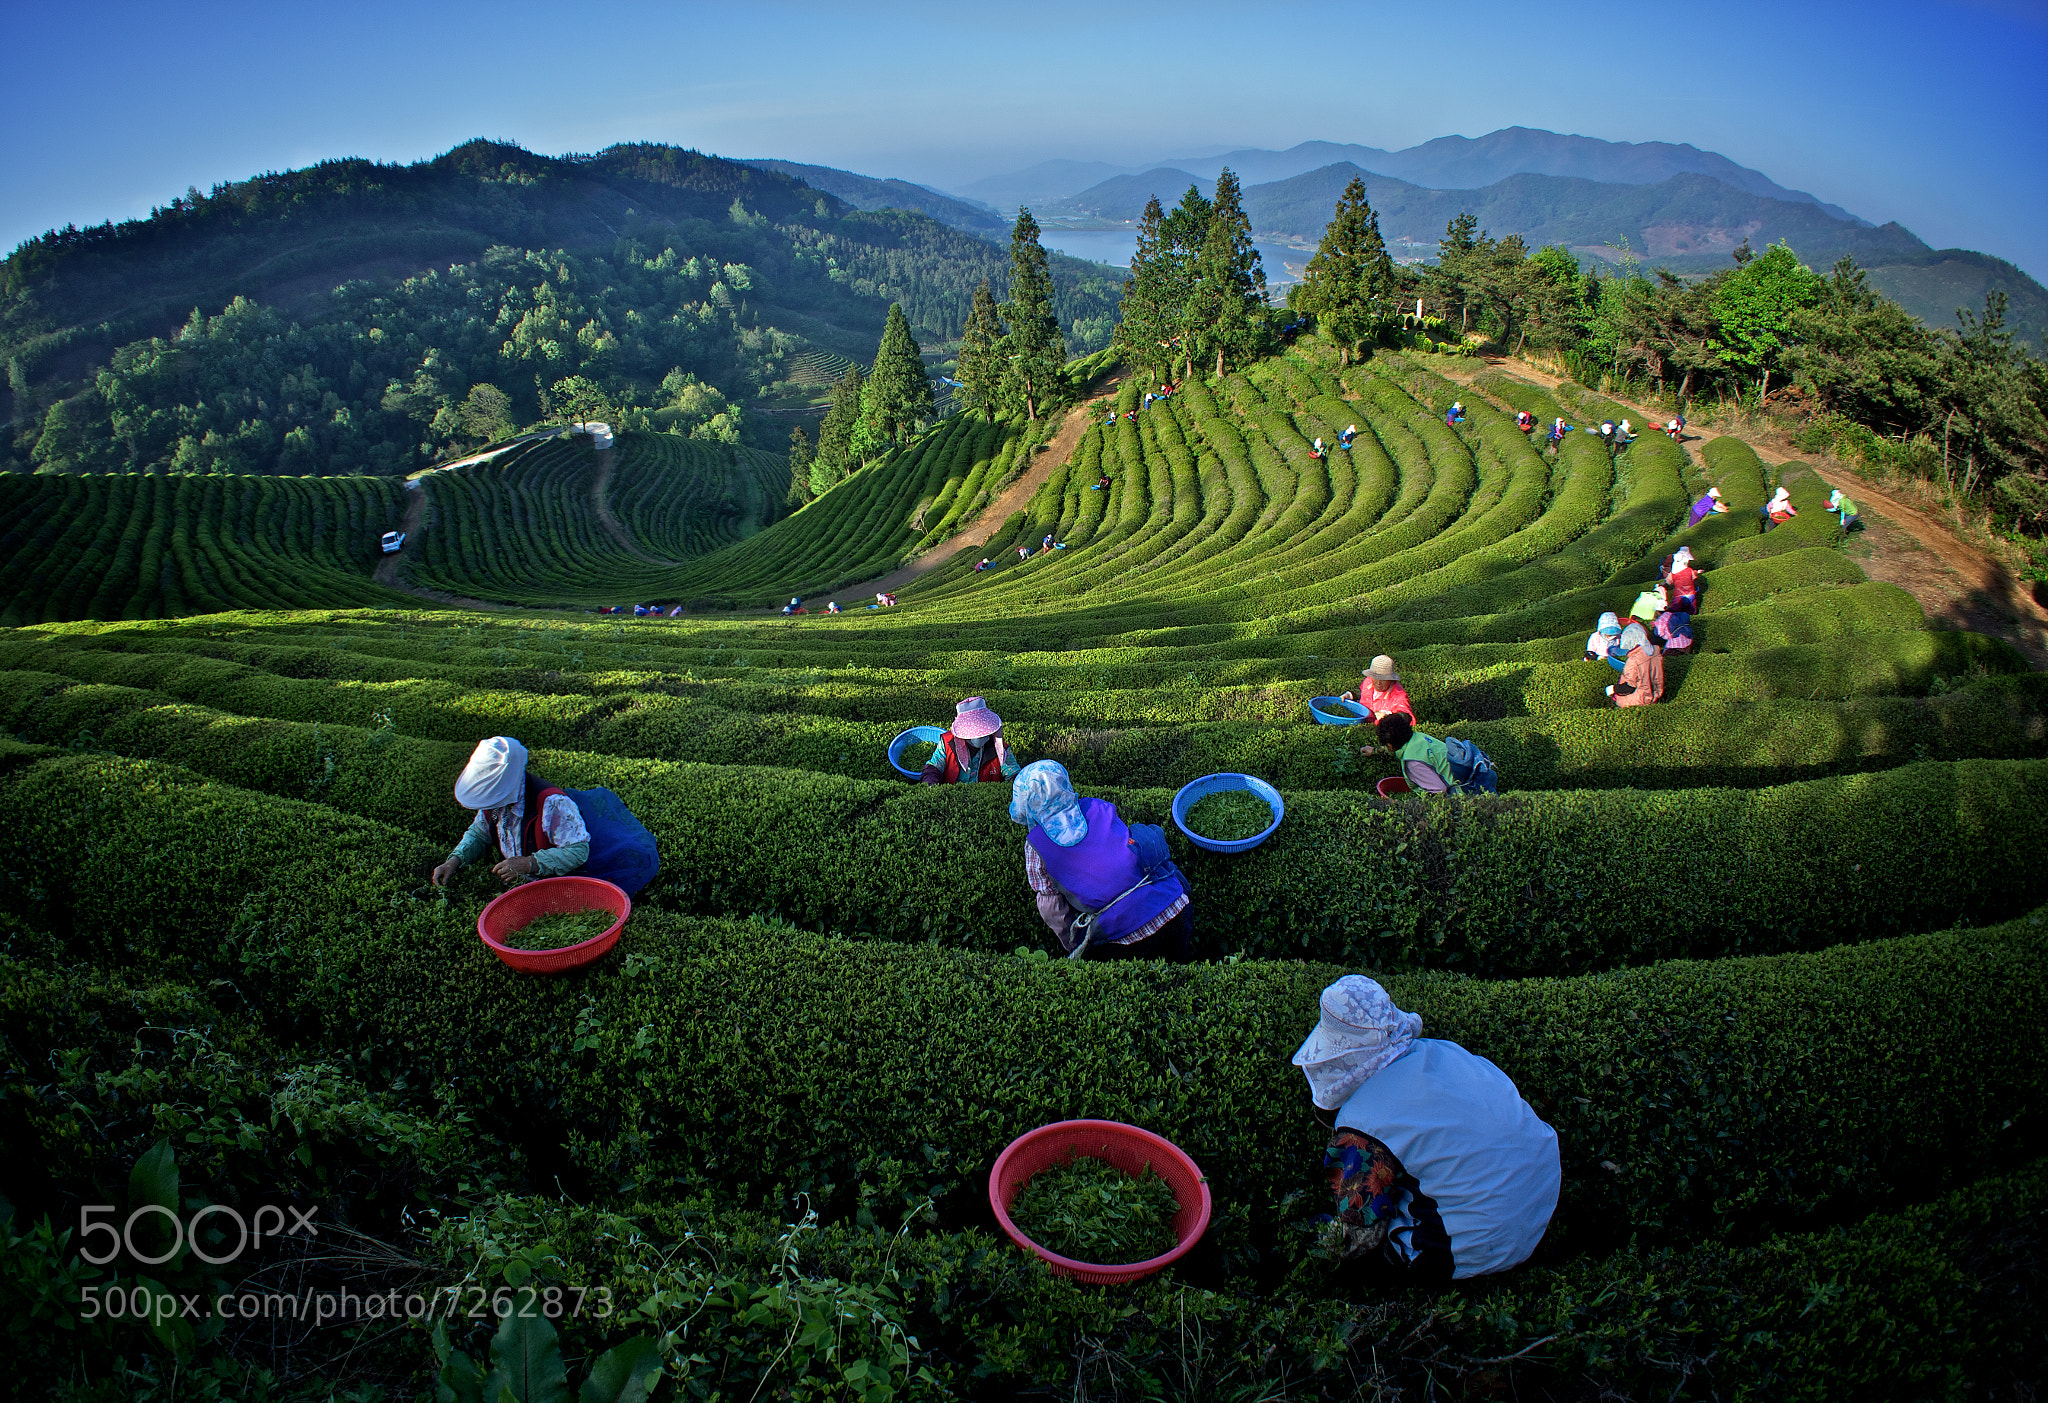 Photograph GreenTea Field in Korea by Jeong-Keun Kim on 500px